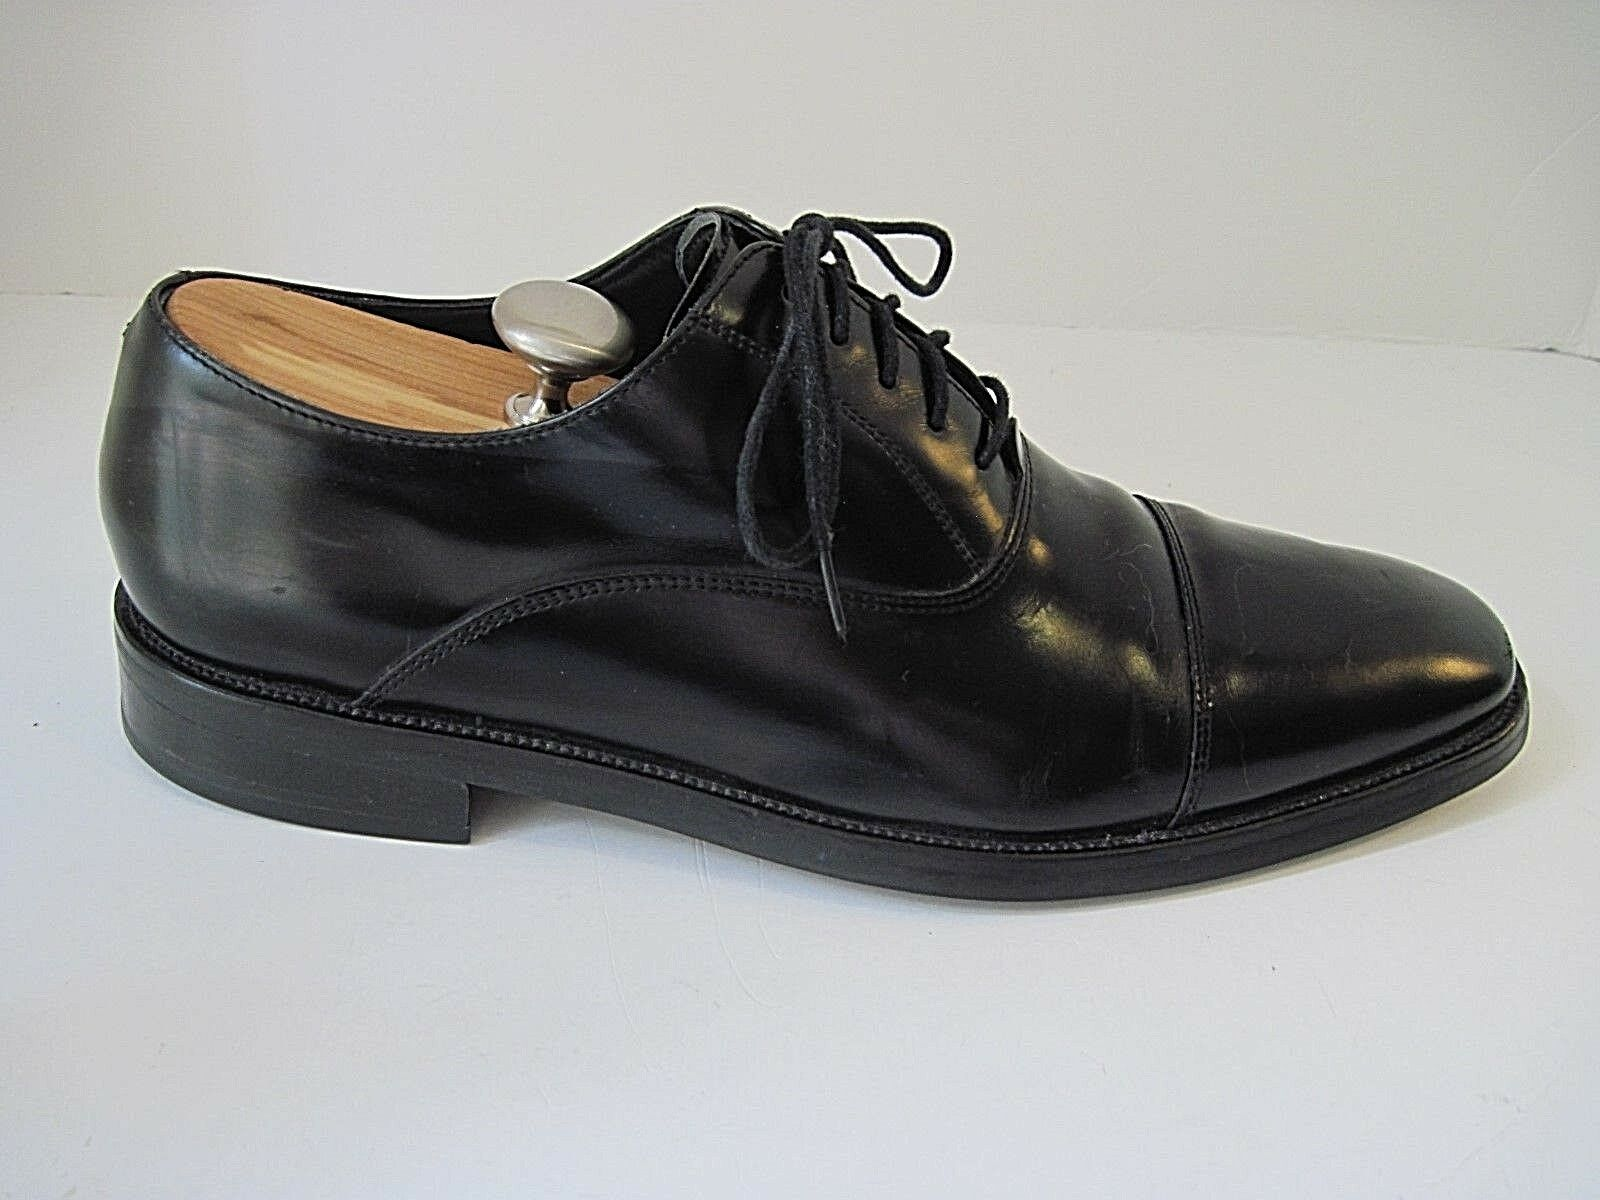 economico online Cole Haan Haan Haan Nke Air Uomo nero  Leather Oxford Cap Toe Dress scarpe Dimensione 11 1 2 M  confortevole